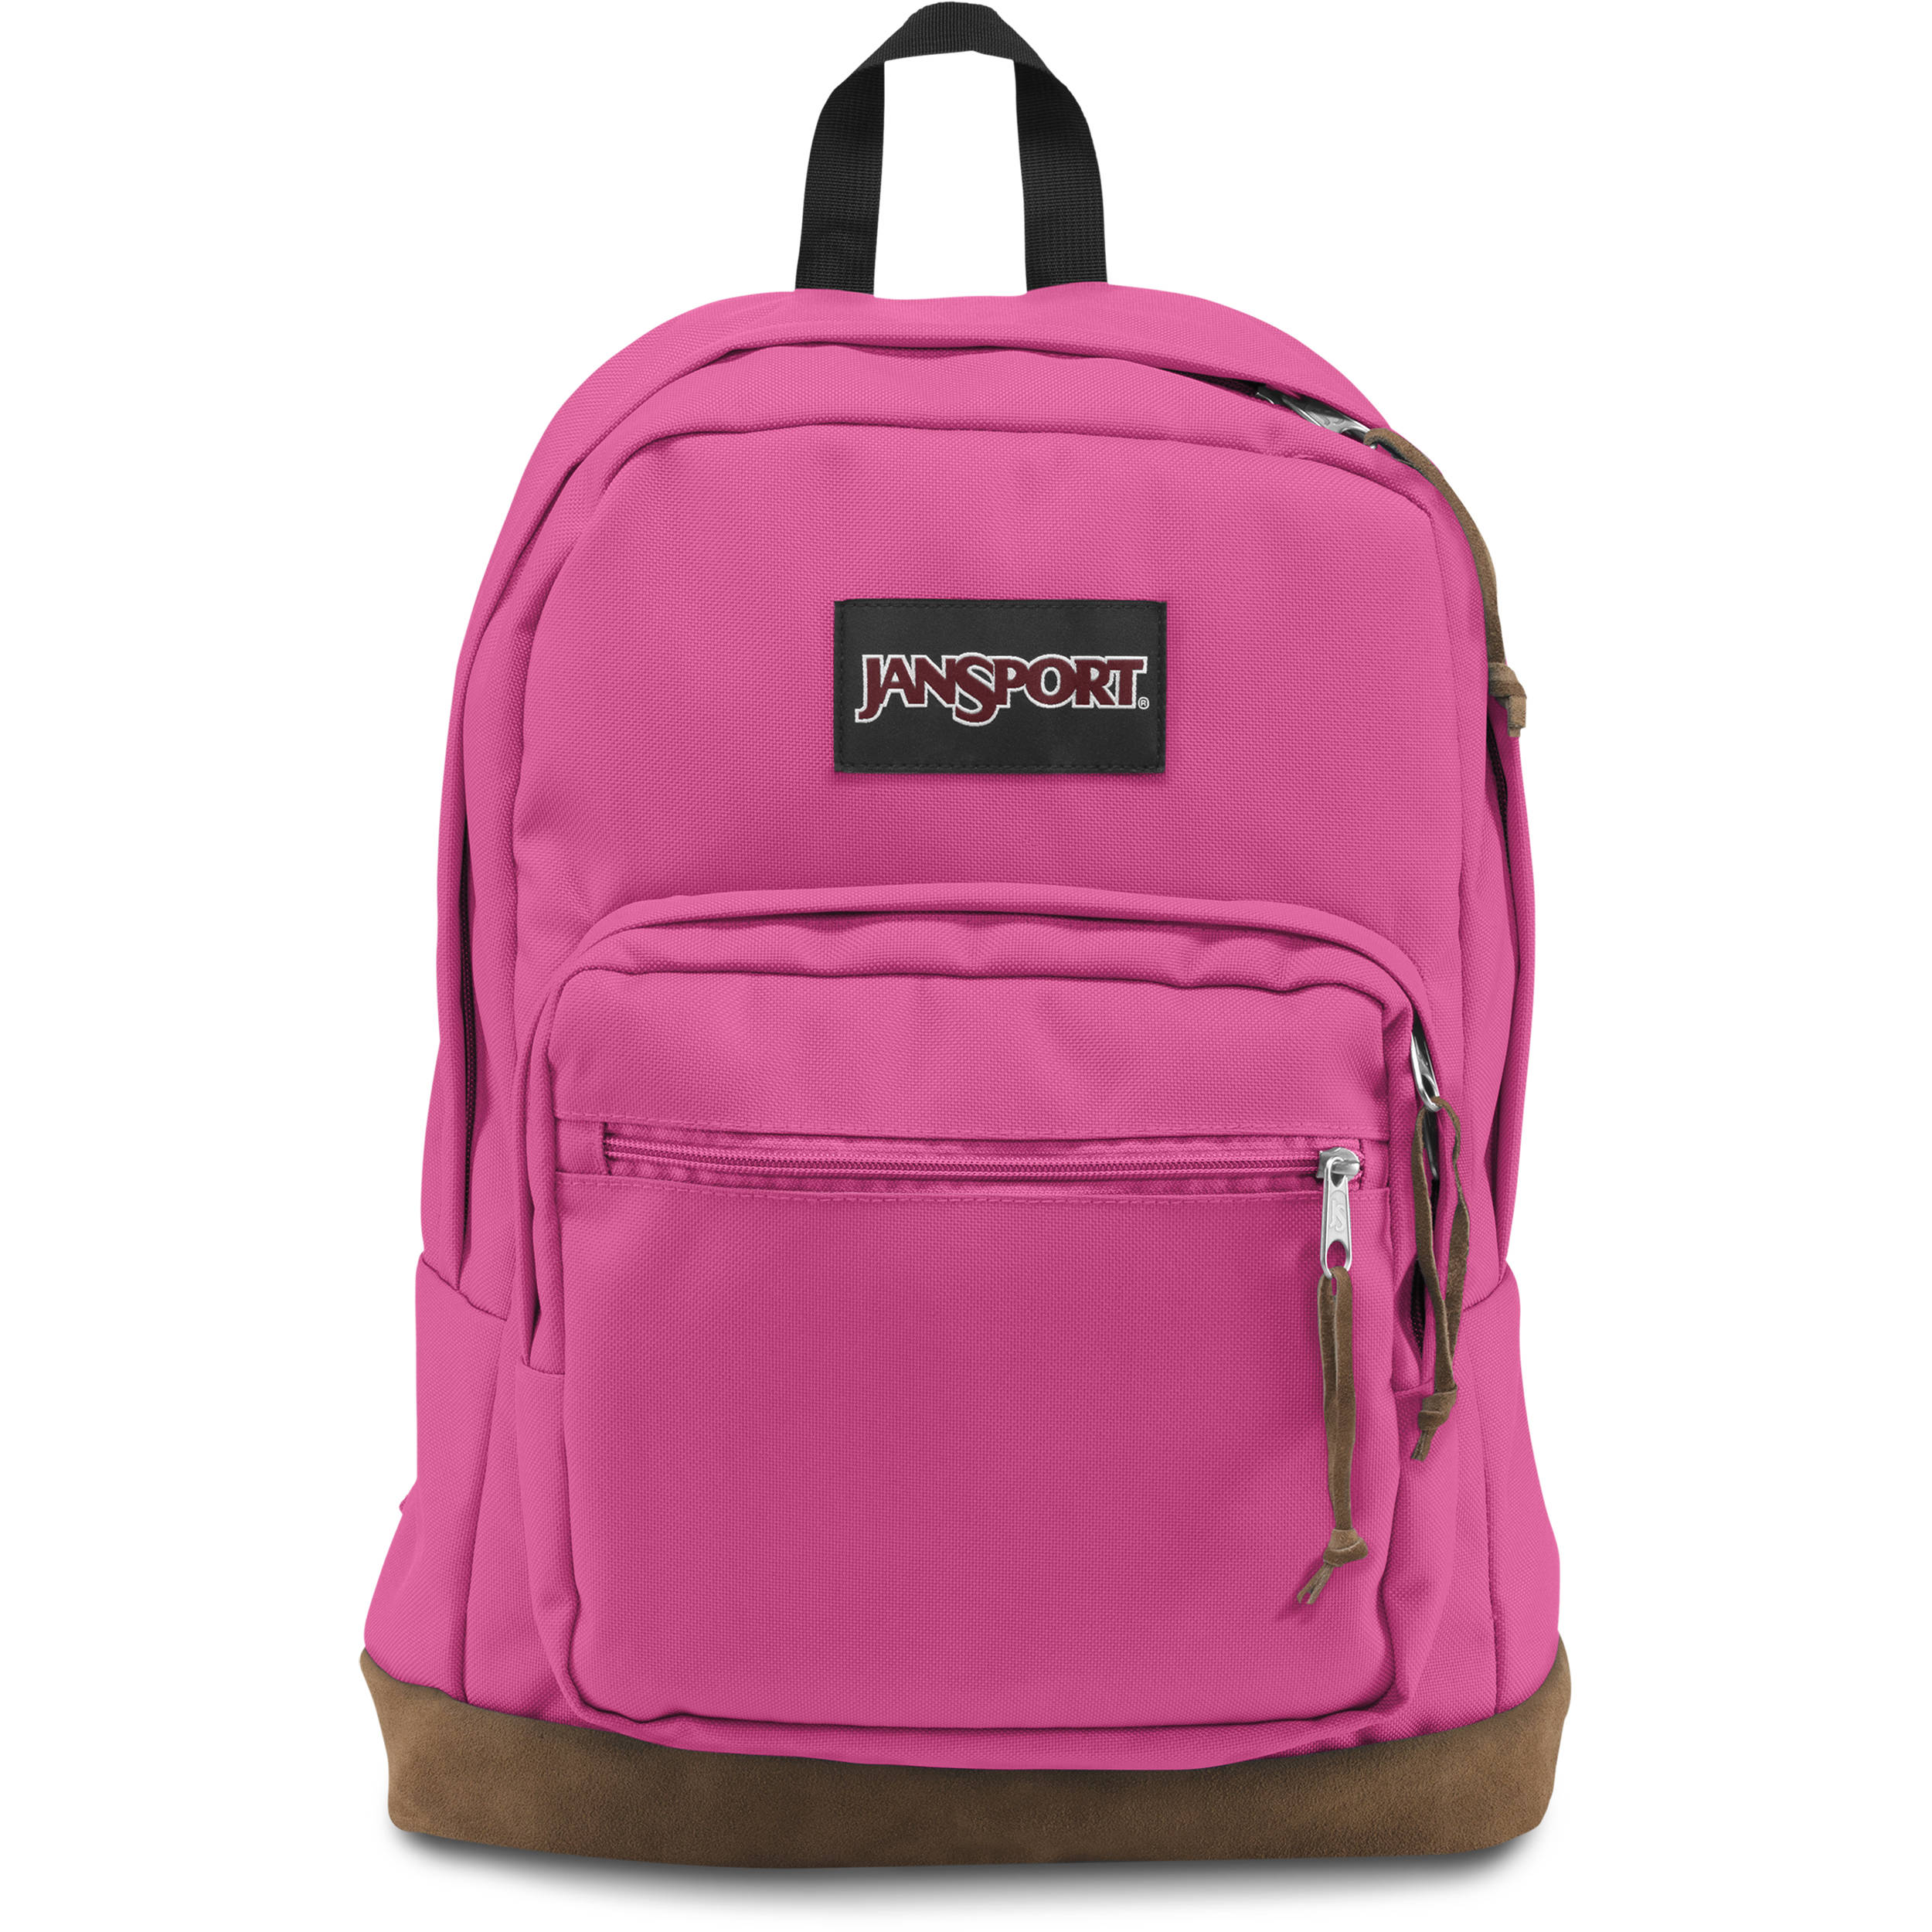 first jansport backpack Backpack Tools